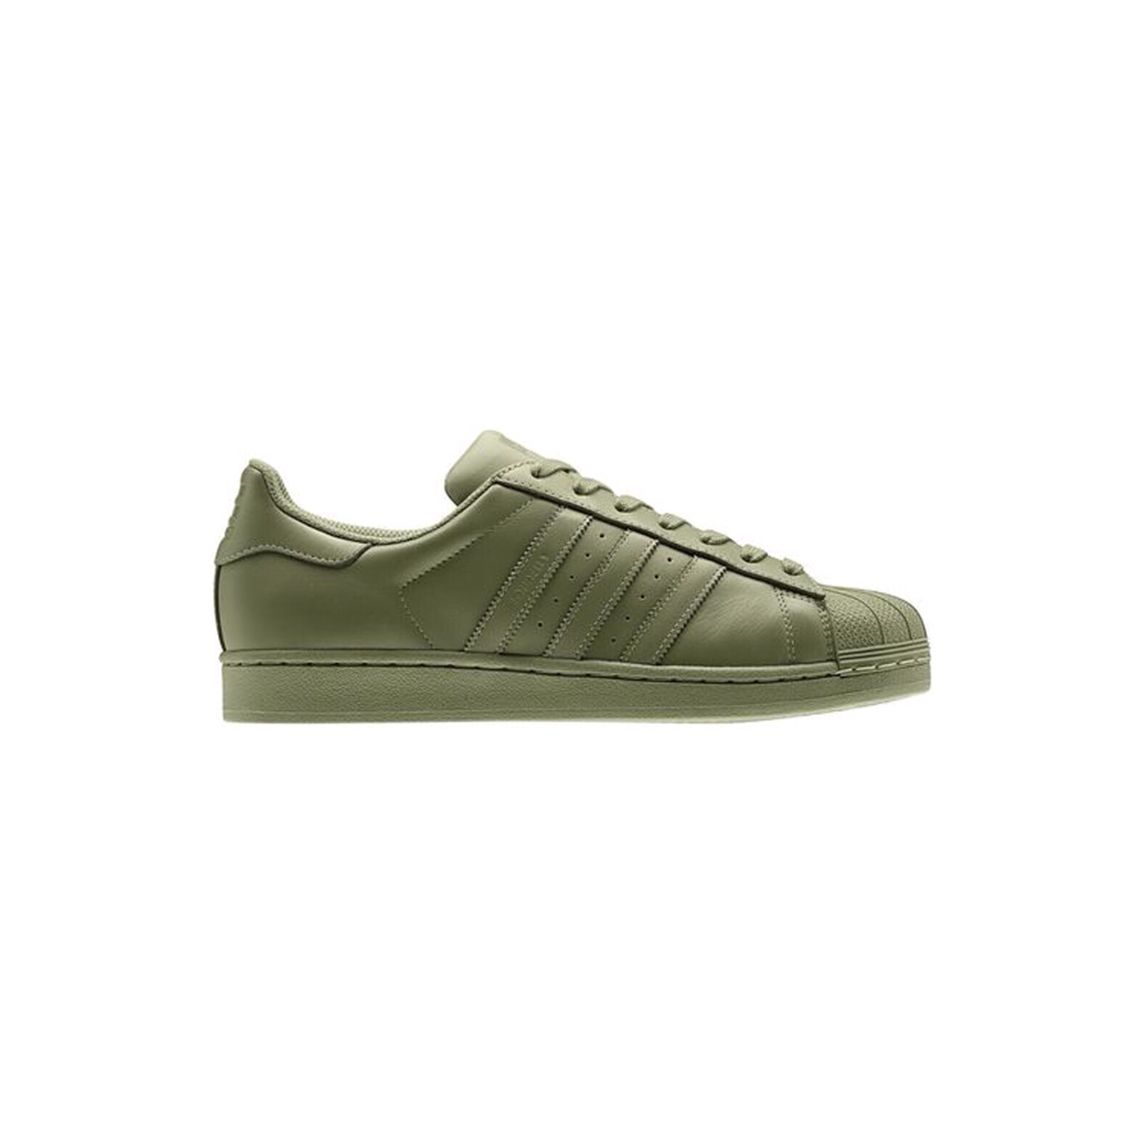 Pharrell x Adidas Originals Supercolor - Olive Green Superstar finally got  my hands ons pair of